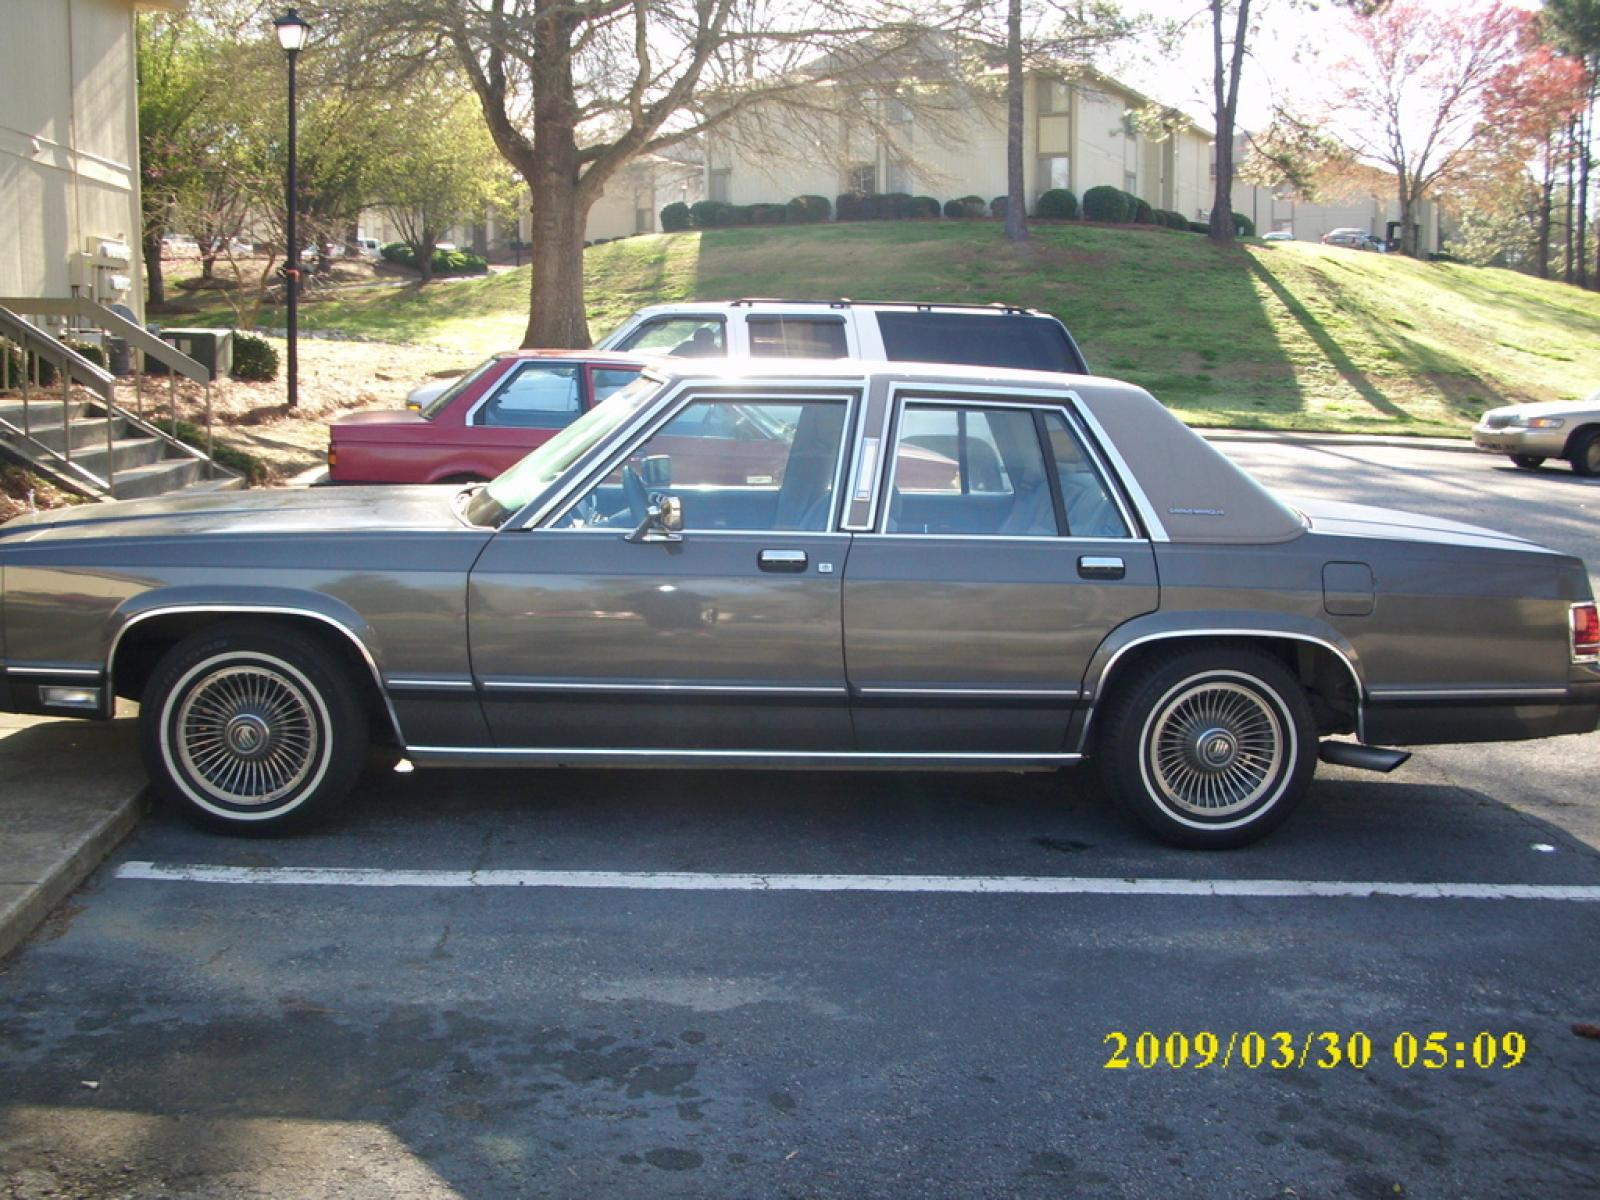 1990 Mercury Grand Marquis - Information and photos - ZombieDrive on mercury marauder, 1990 mercury villager, 1990 mercury cougar, lincoln mks, 1971 mercury marquis, 1990 mercury sable, 1990 mercury marquis gray, lincoln town car, lincoln mkt, 1990 mercury marauder, 1990 mercury topaz, ford modular engine, 1990 mercury cars models, ford fusion, lincoln continental, 1990 mercury comet, ford taurus, mercury sable, mercury montego, chevrolet caprice, 1990 ford mercury marquis, ford crown victoria, ford ltd crown victoria, 1990 mercury capri, 1990 mercury montego, 1990 mercury vehicles, ford ltd, ford crown victoria police interceptor, 1990 mercury mountaineer, mercury milan, mercury monterey, 1990 mercury station wagon, pontiac grand prix, mercury cougar, 1990 mercury colony park,